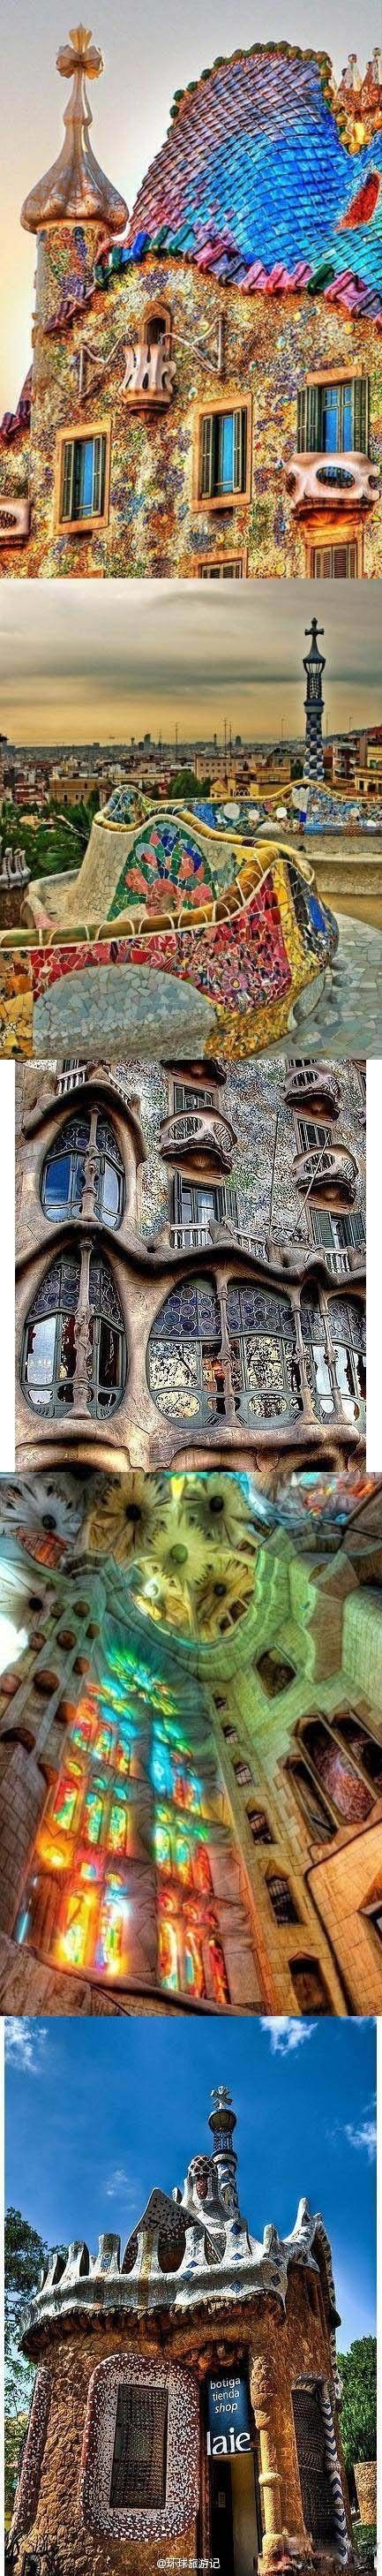 Barcelona <- I LOVED this city, Gaudi's work is absolutely stunning, it made me feel like I had jumped into a fairy tale book and never wanted to leave.: